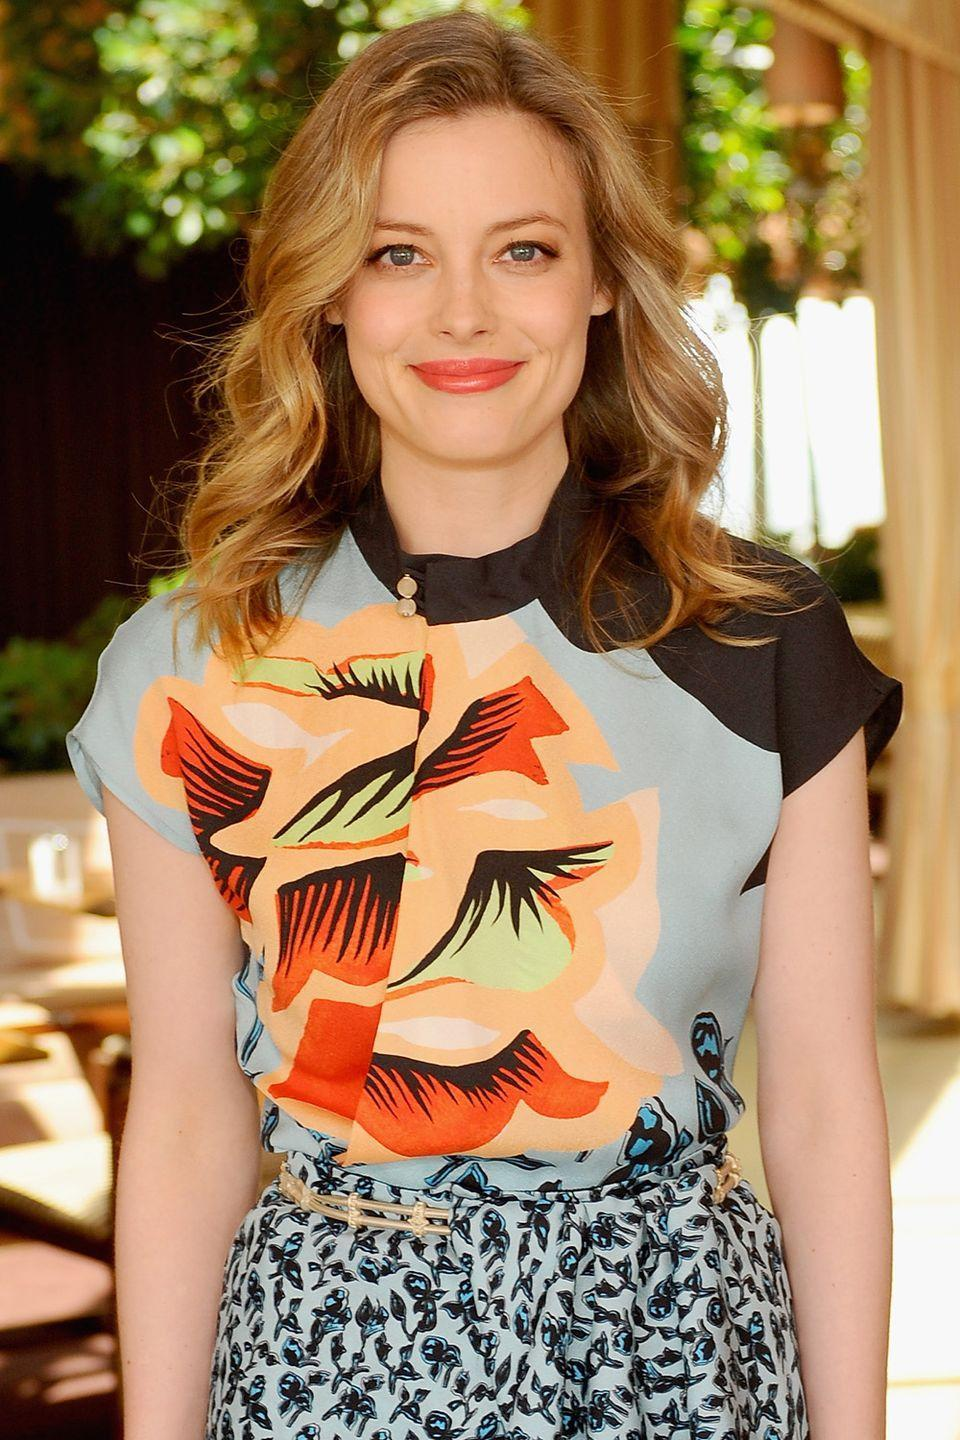 """<p>Despite many of the roles the TV and film actress has played in the past, Gillian Jacobs revealed on <a href=""""https://www.youtube.com/watch?v=IeLbPRXujaU"""" rel=""""nofollow noopener"""" target=""""_blank"""" data-ylk=""""slk:Jimmy Kimmel Live!"""" class=""""link rapid-noclick-resp"""">Jimmy Kimmel Live!</a> that she's never had a drink in her life and doesn't plan to. </p>"""